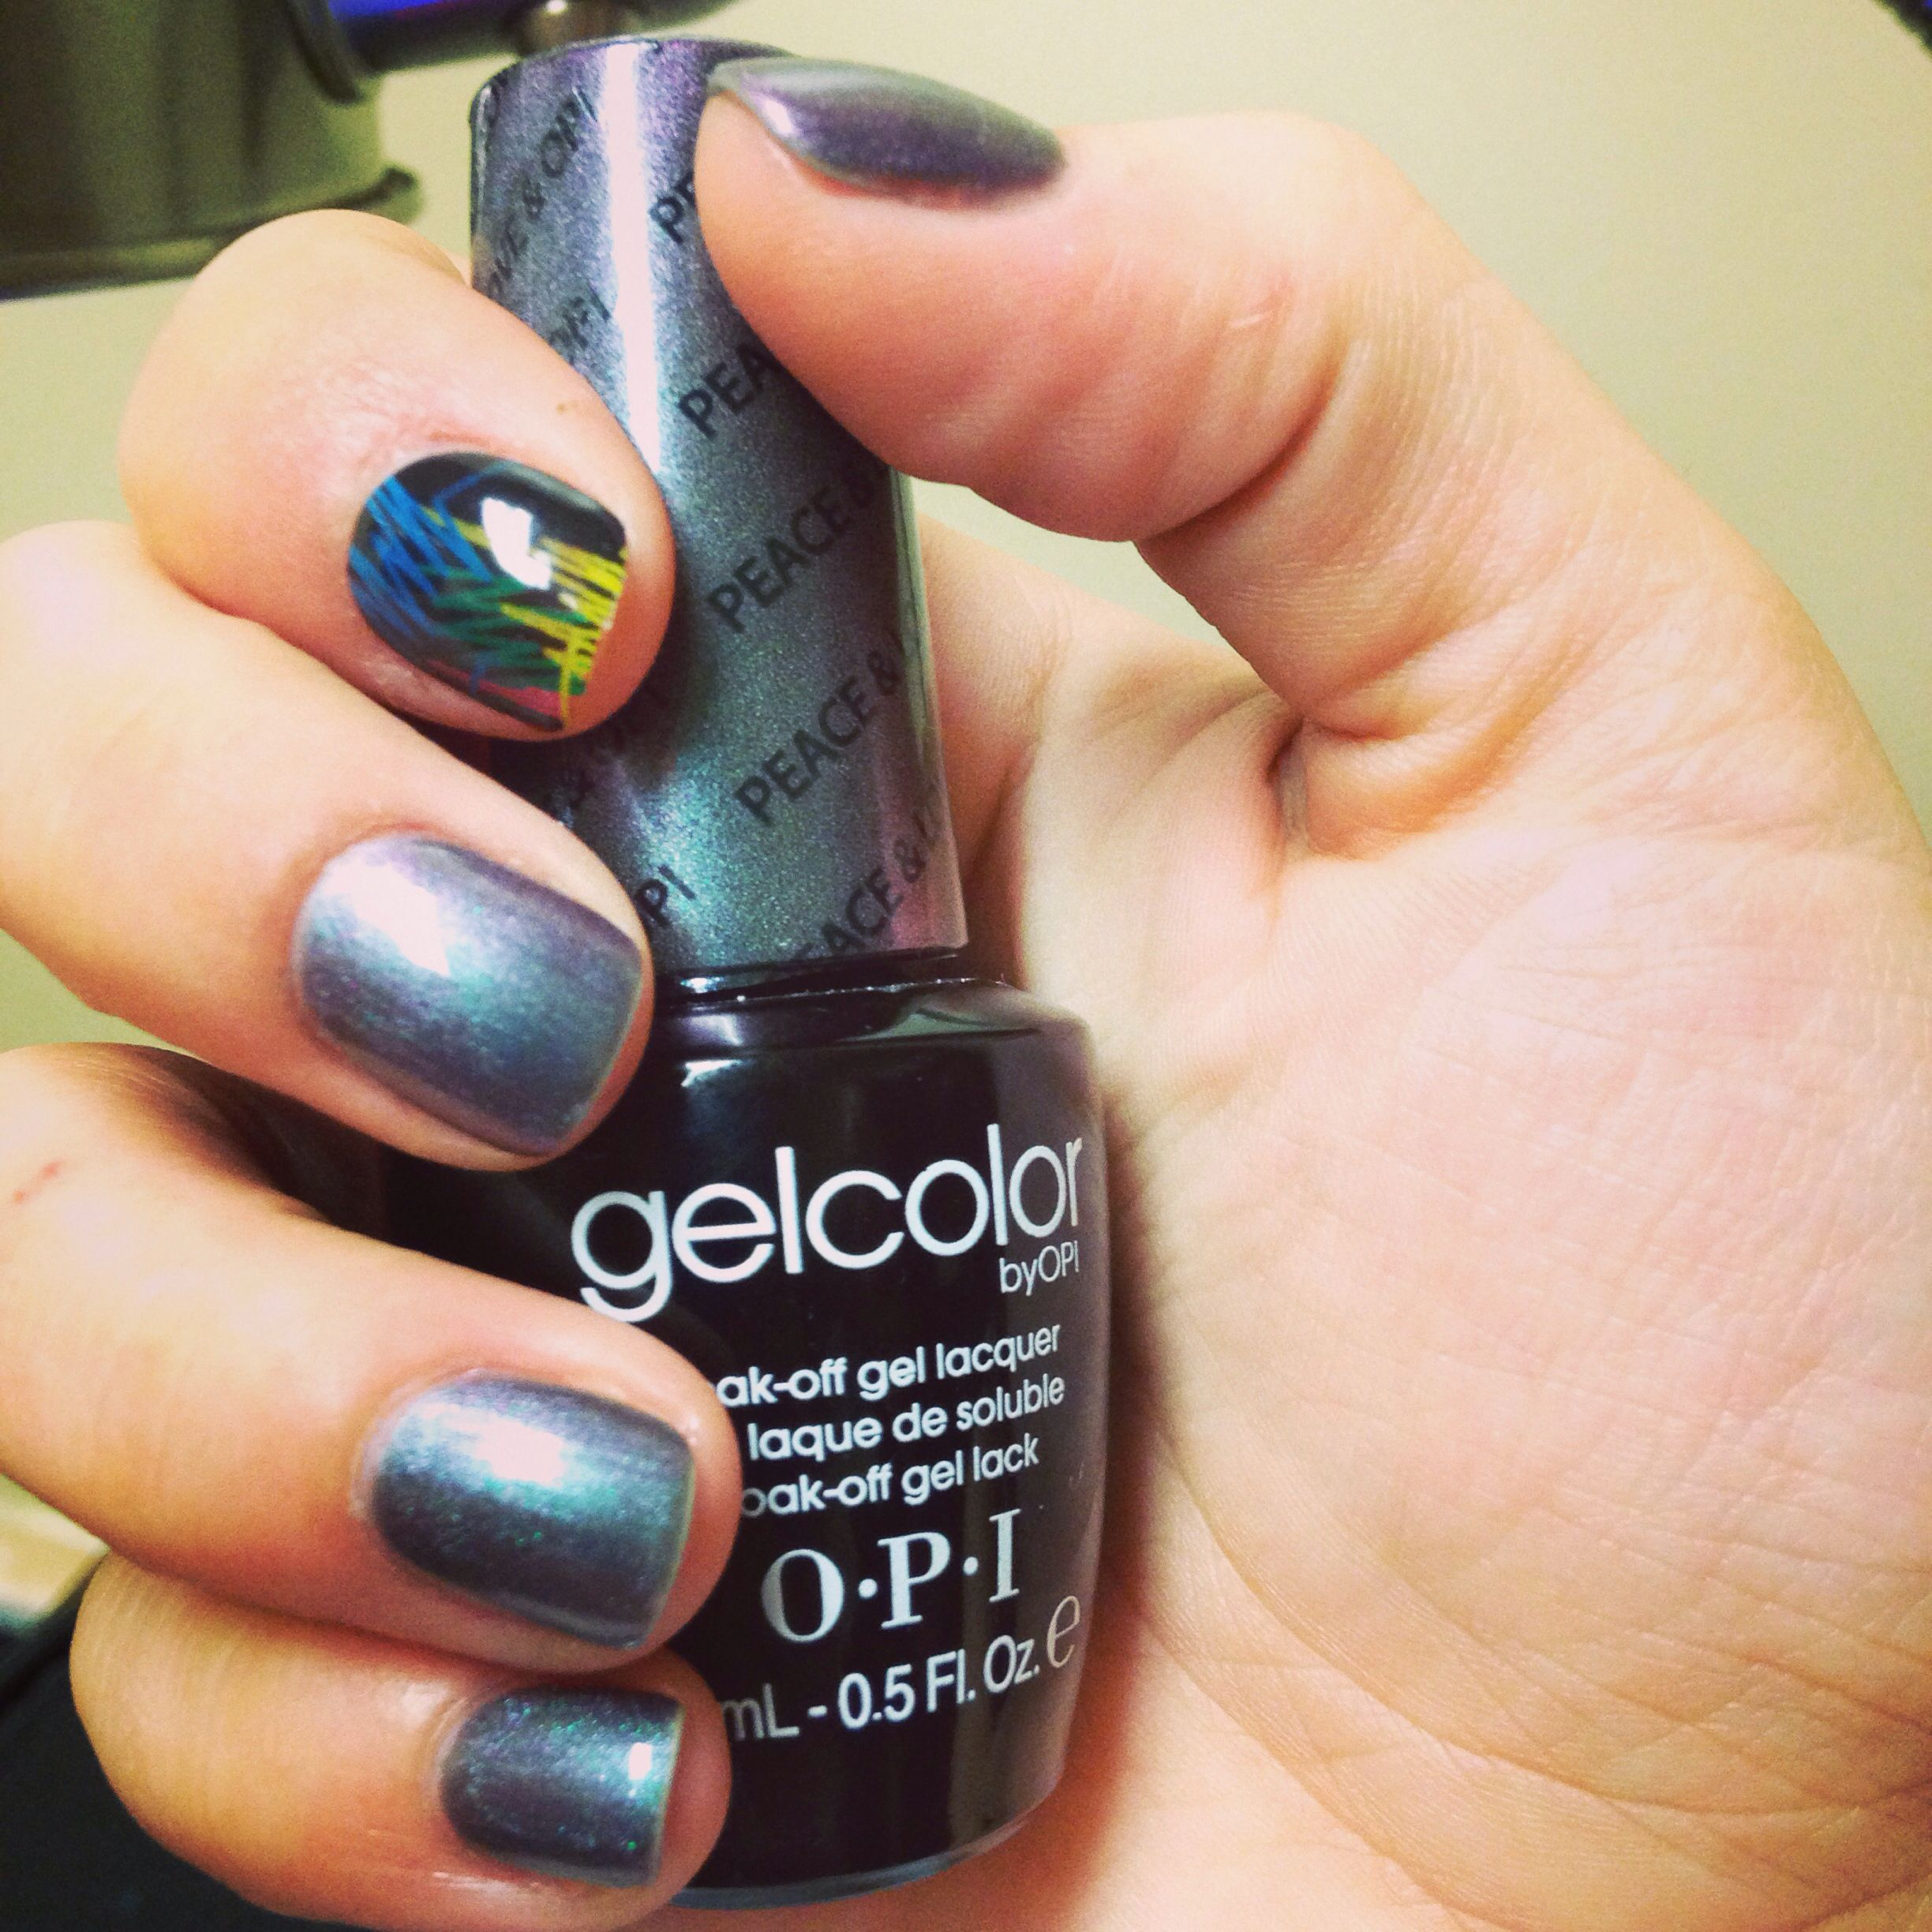 OPI gel polish in Peace, Love, and OPI and MINX design | Nails by ...